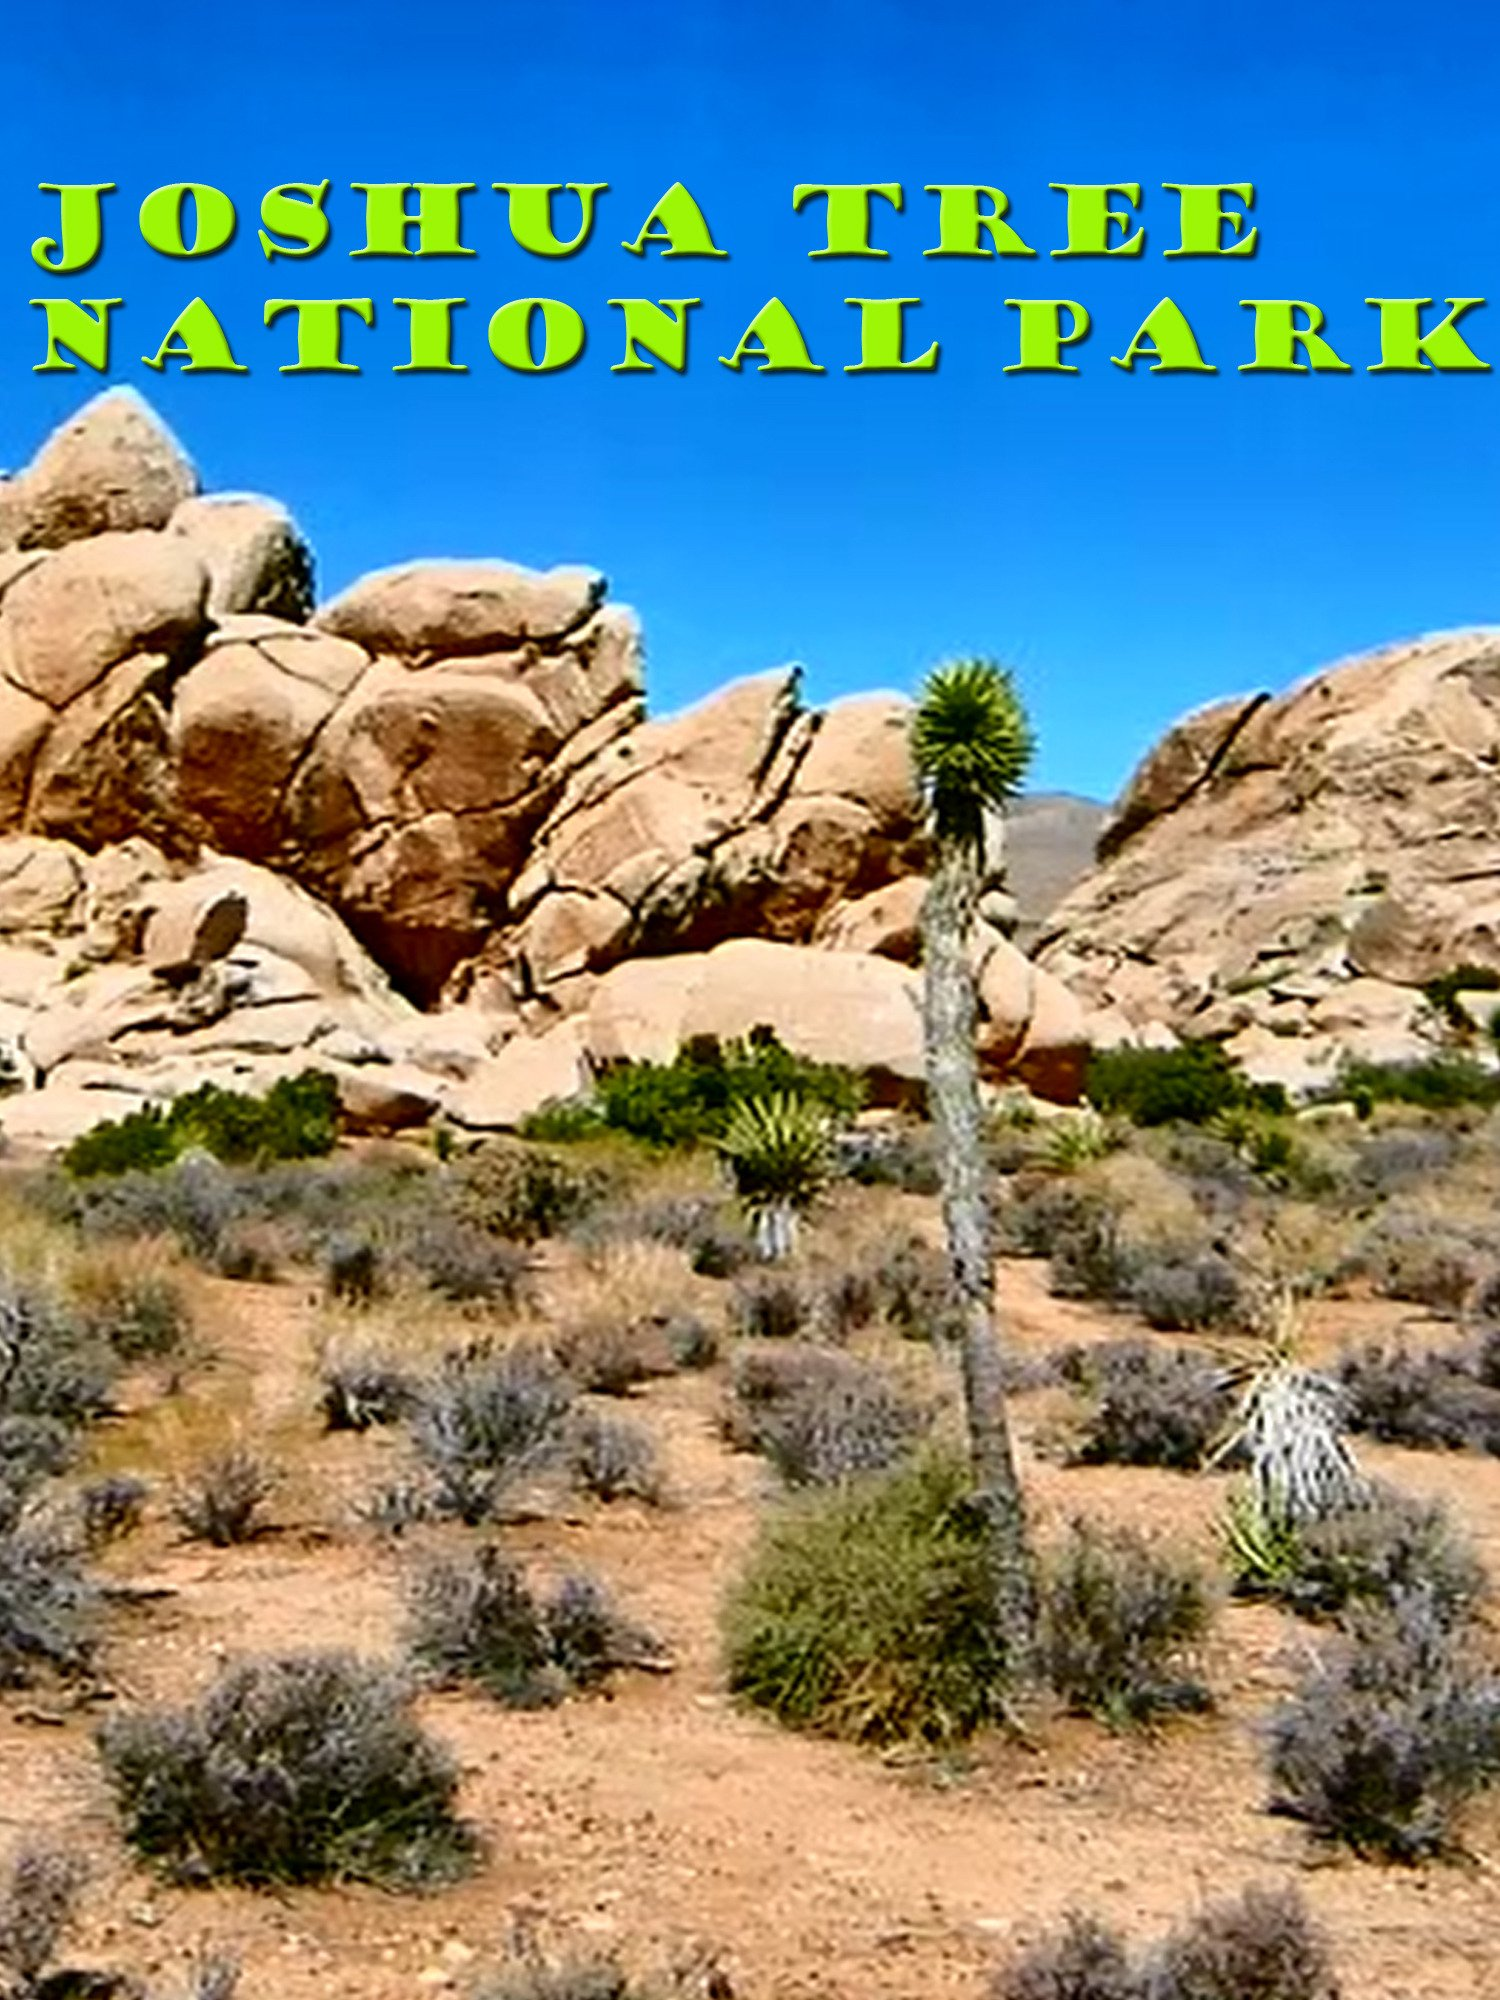 Clip: Joshua Tree National Park